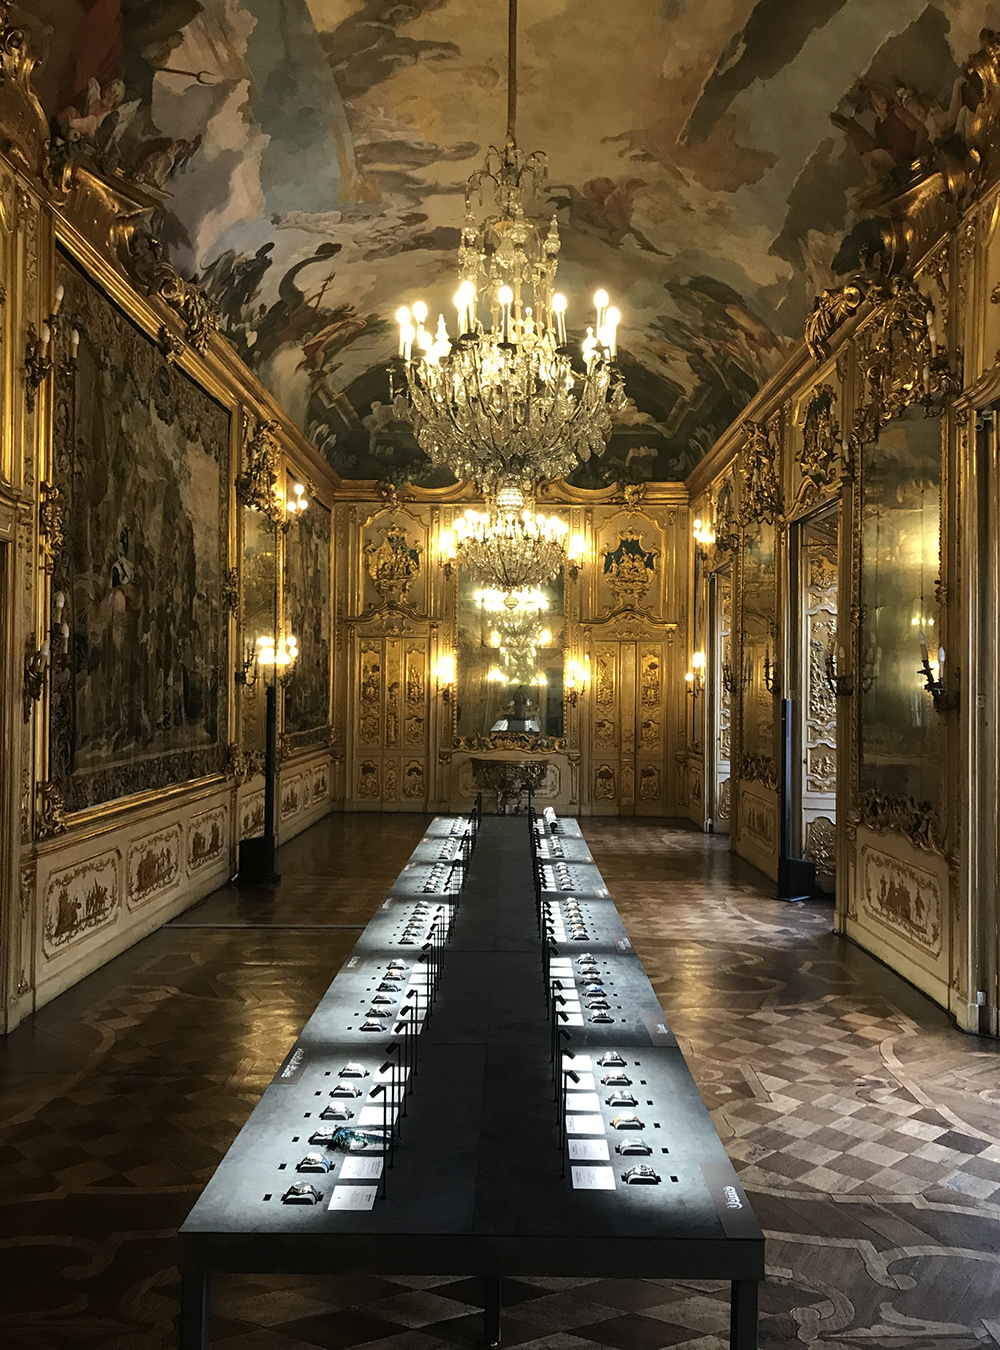 A free access table for the Grand Prix d'Horlogerie de Genève at the Palazzo Clerici in Milano.